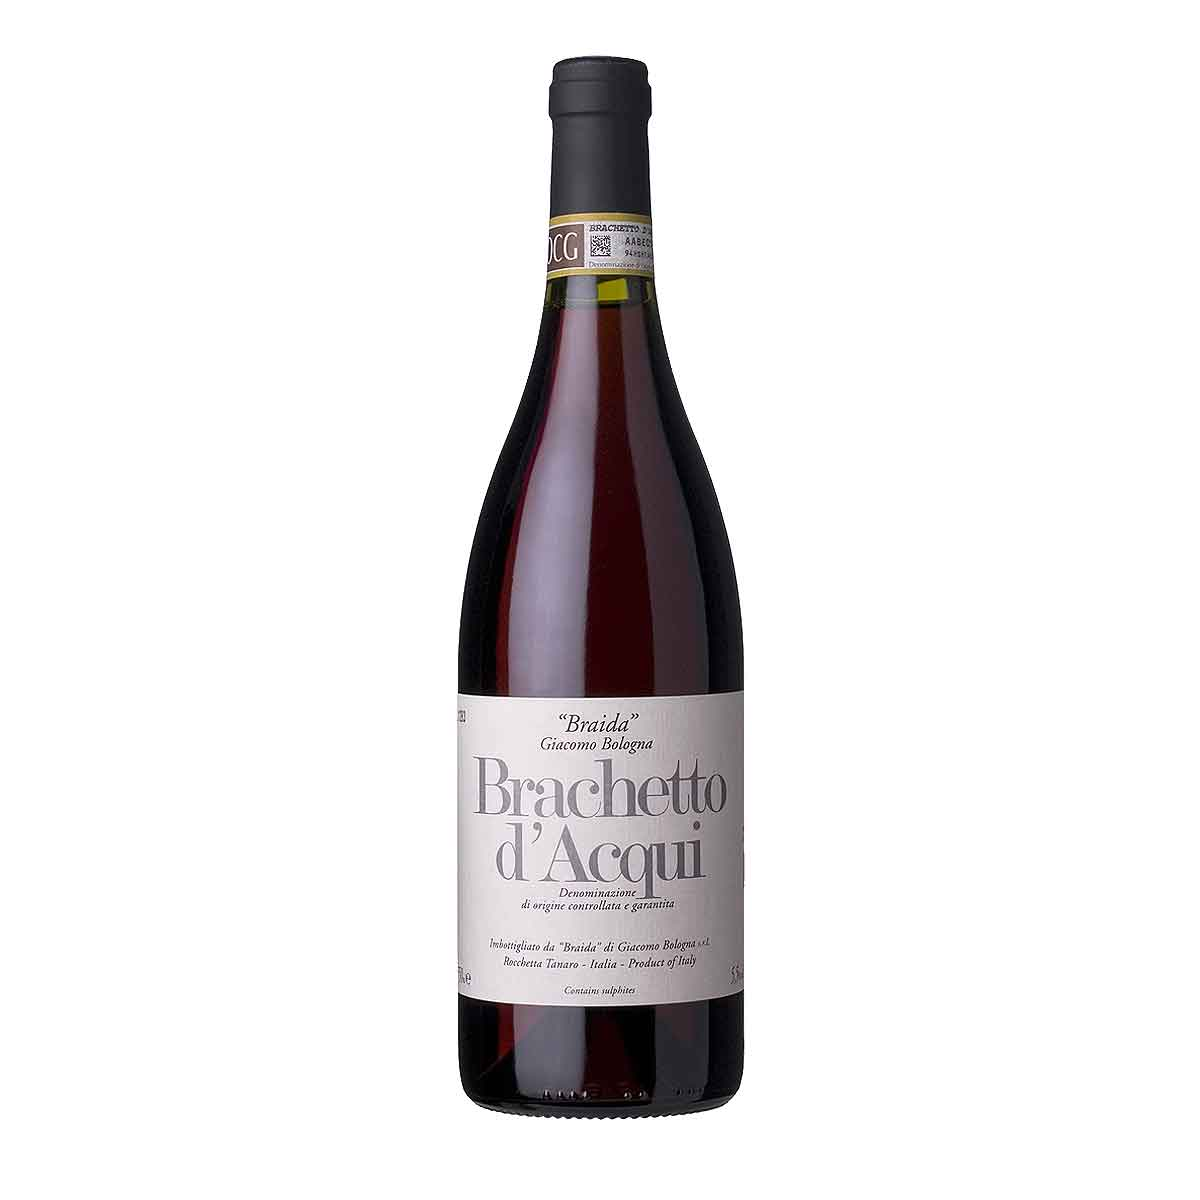 Brachetto d'Acqui Docg, Braida, Vini Dolci - Privilege Wine